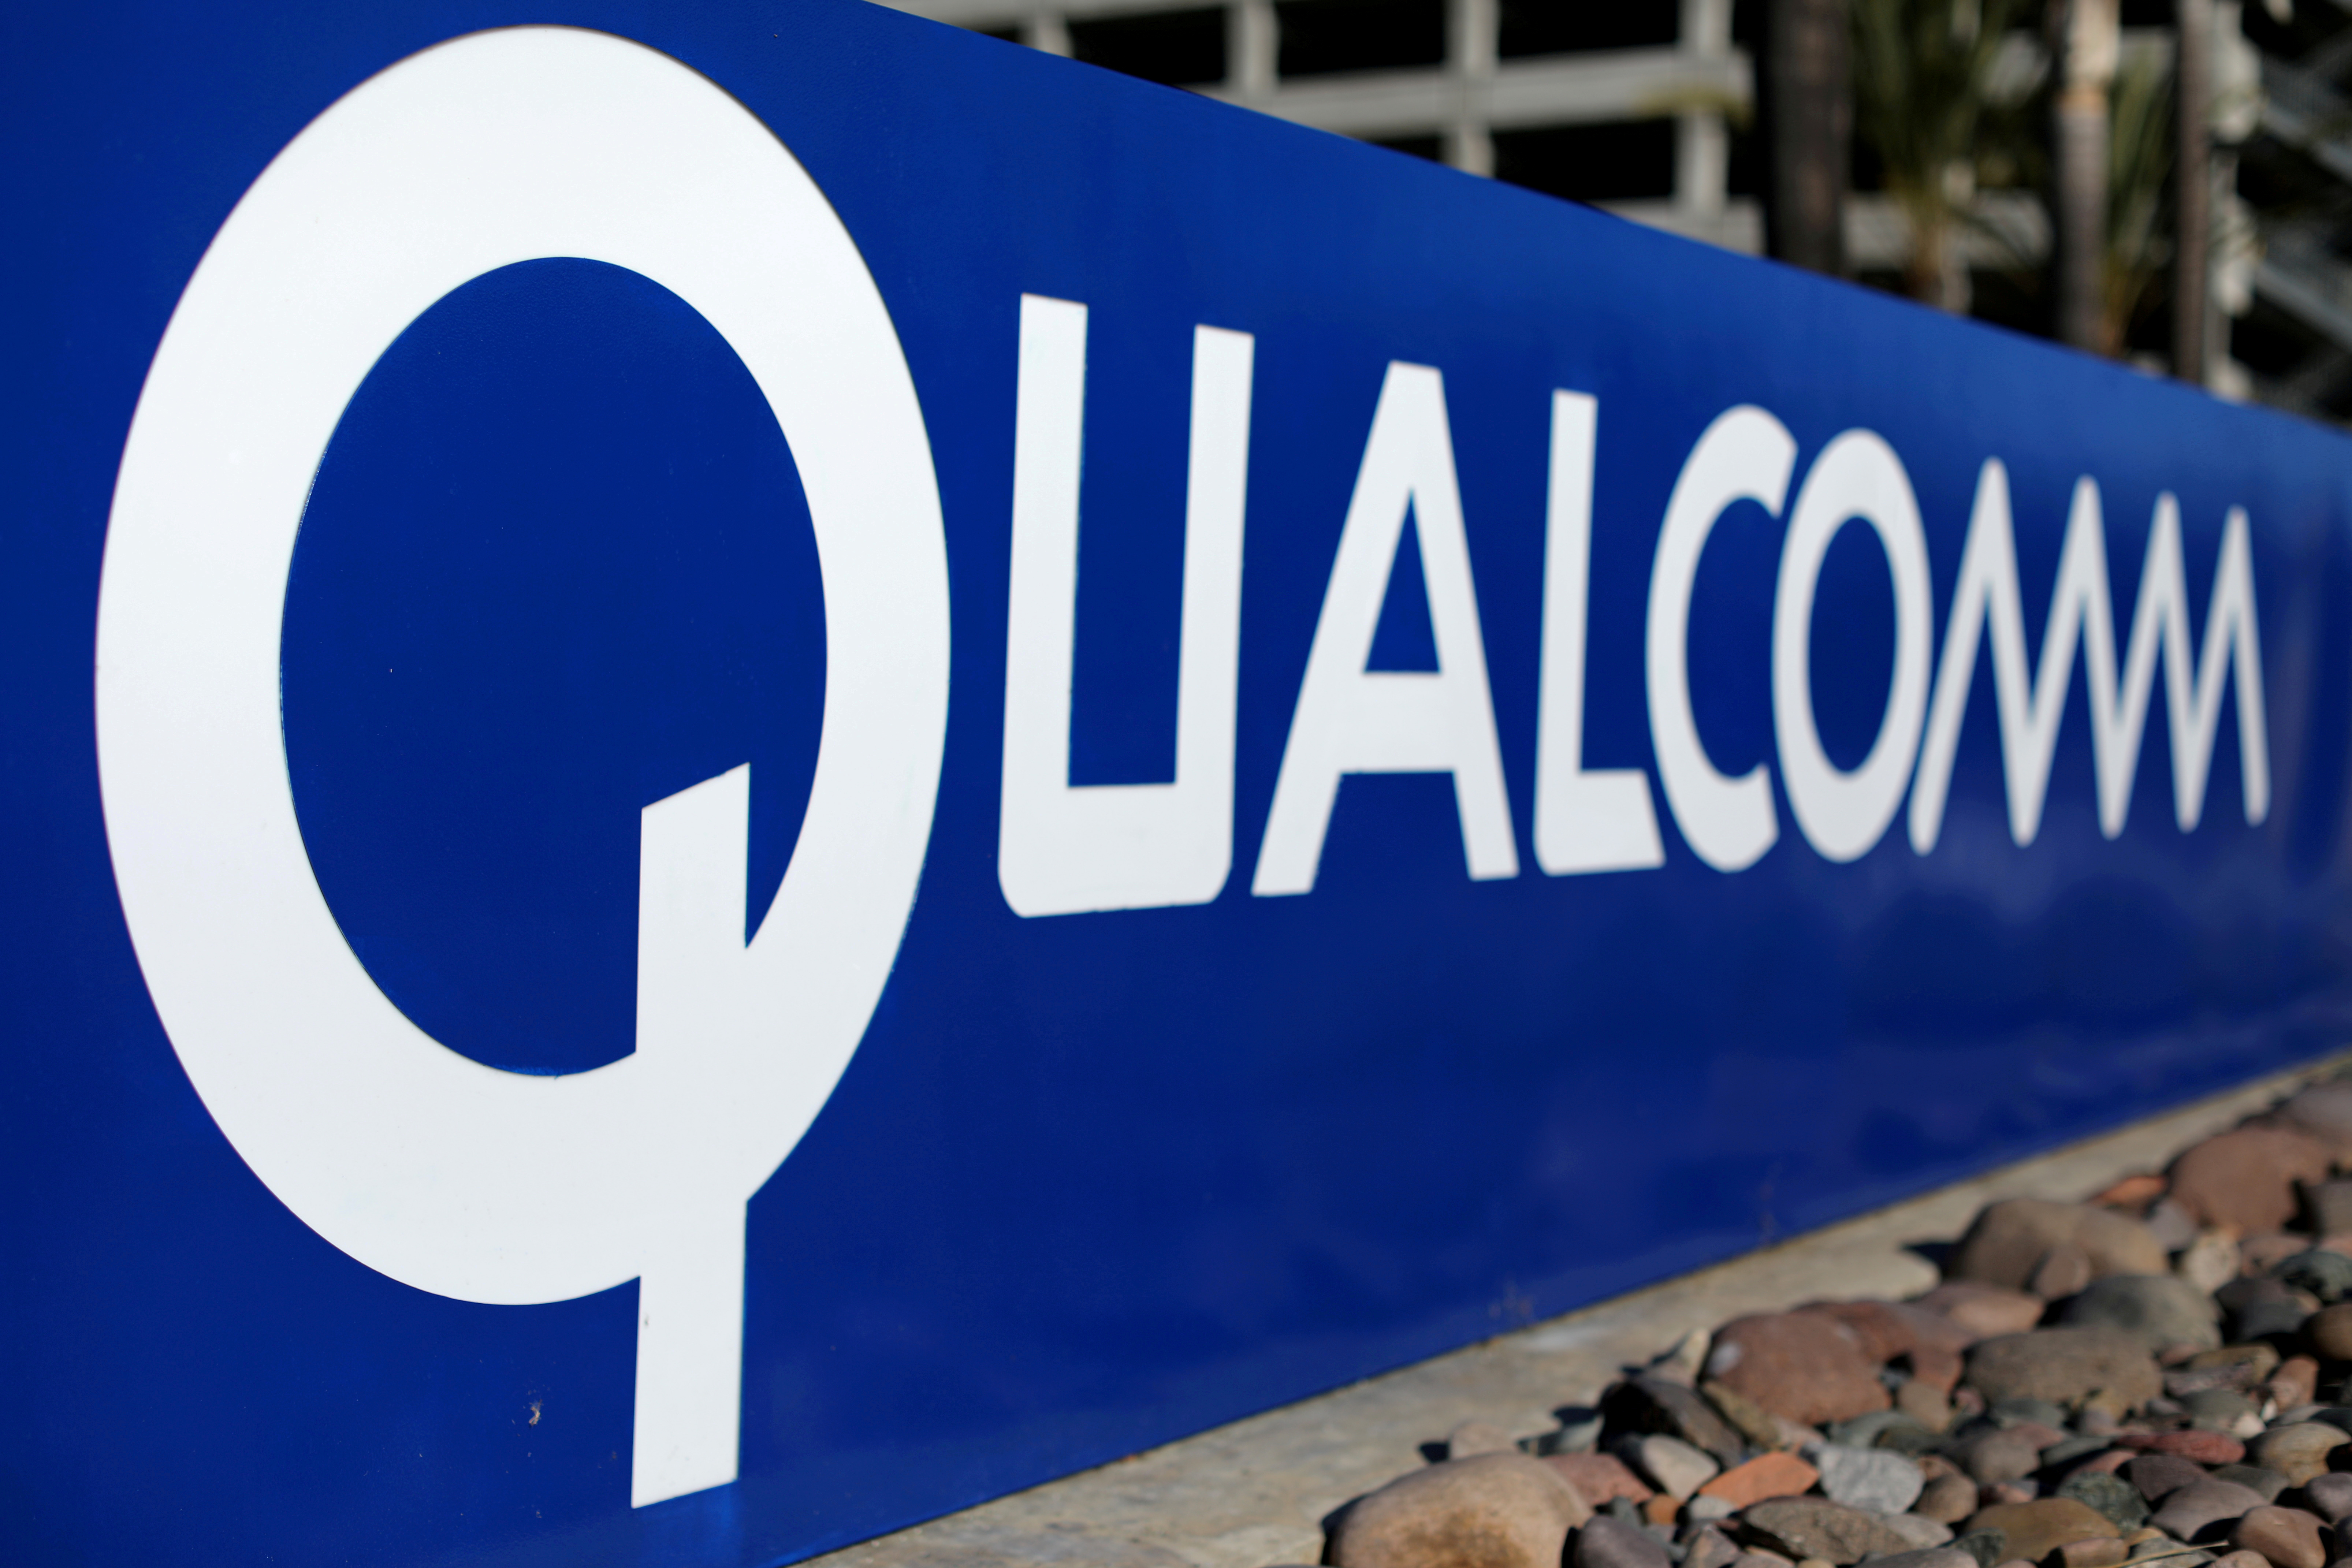 A sign on the Qualcomm campus is seen in San Diego, California, U.S. November 6, 2017. REUTERS/Mike Blake